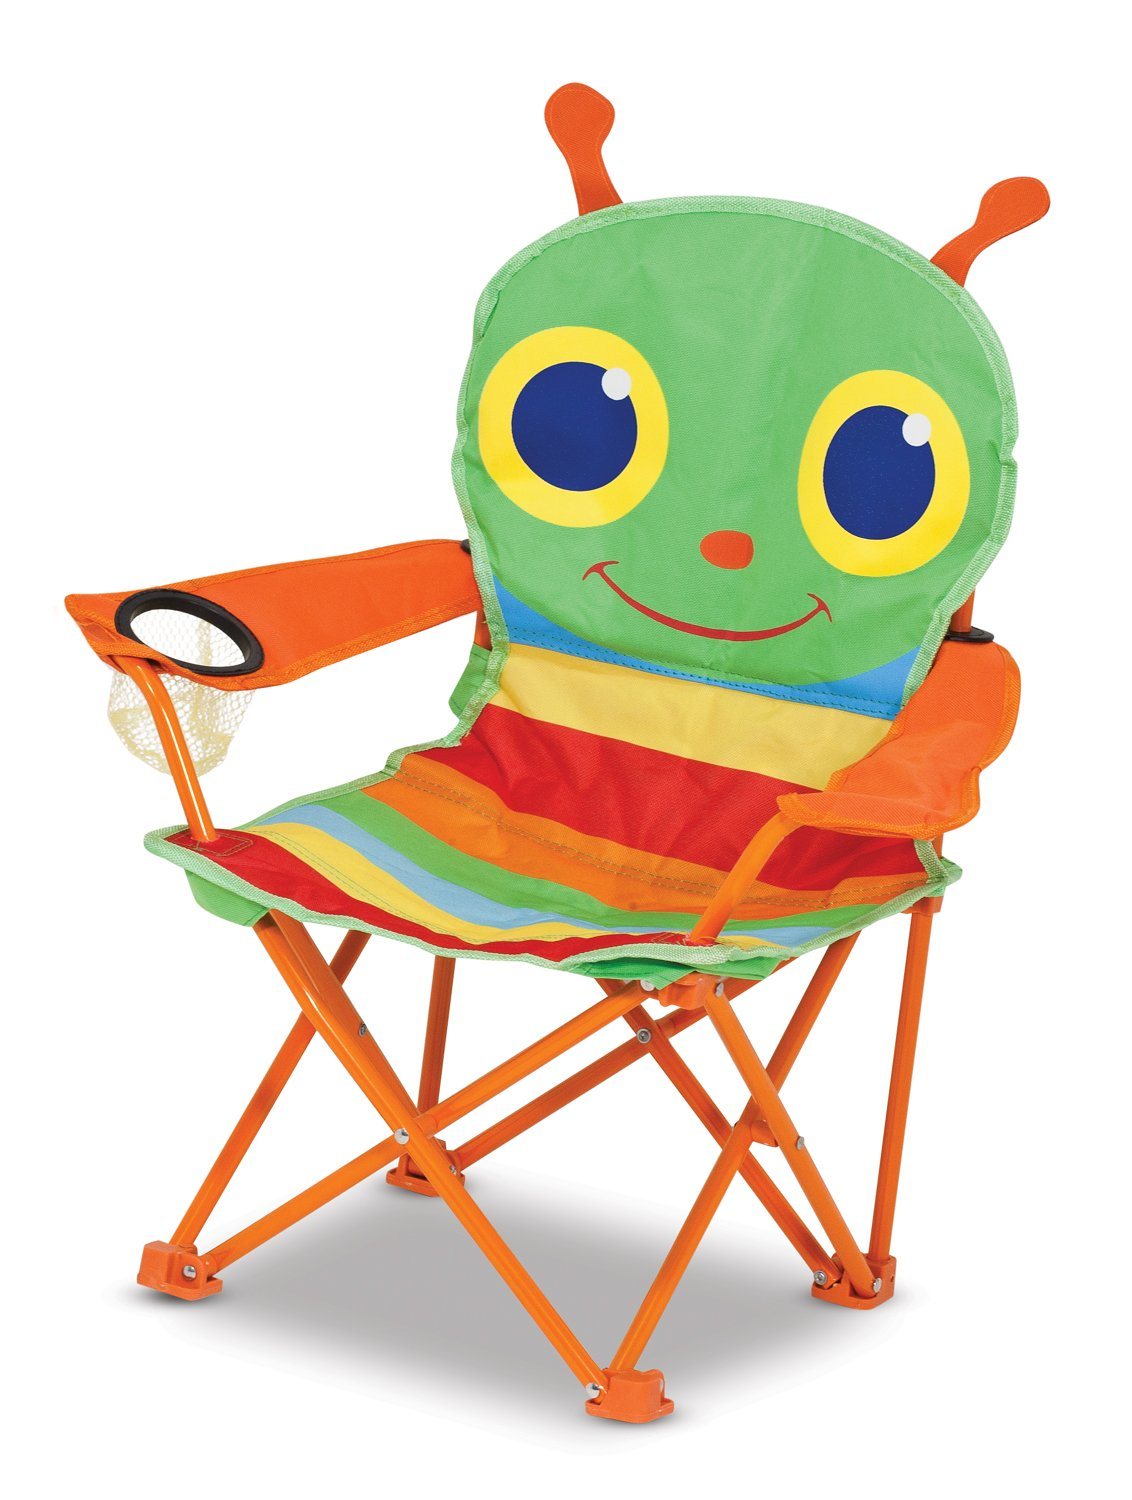 Etonnant Amazon.com: Melissa U0026 Doug Sunny Patch Happy Giddy Outdoor Folding Lawn And  Camping Chair: Melissa U0026 Doug: Toys U0026 Games